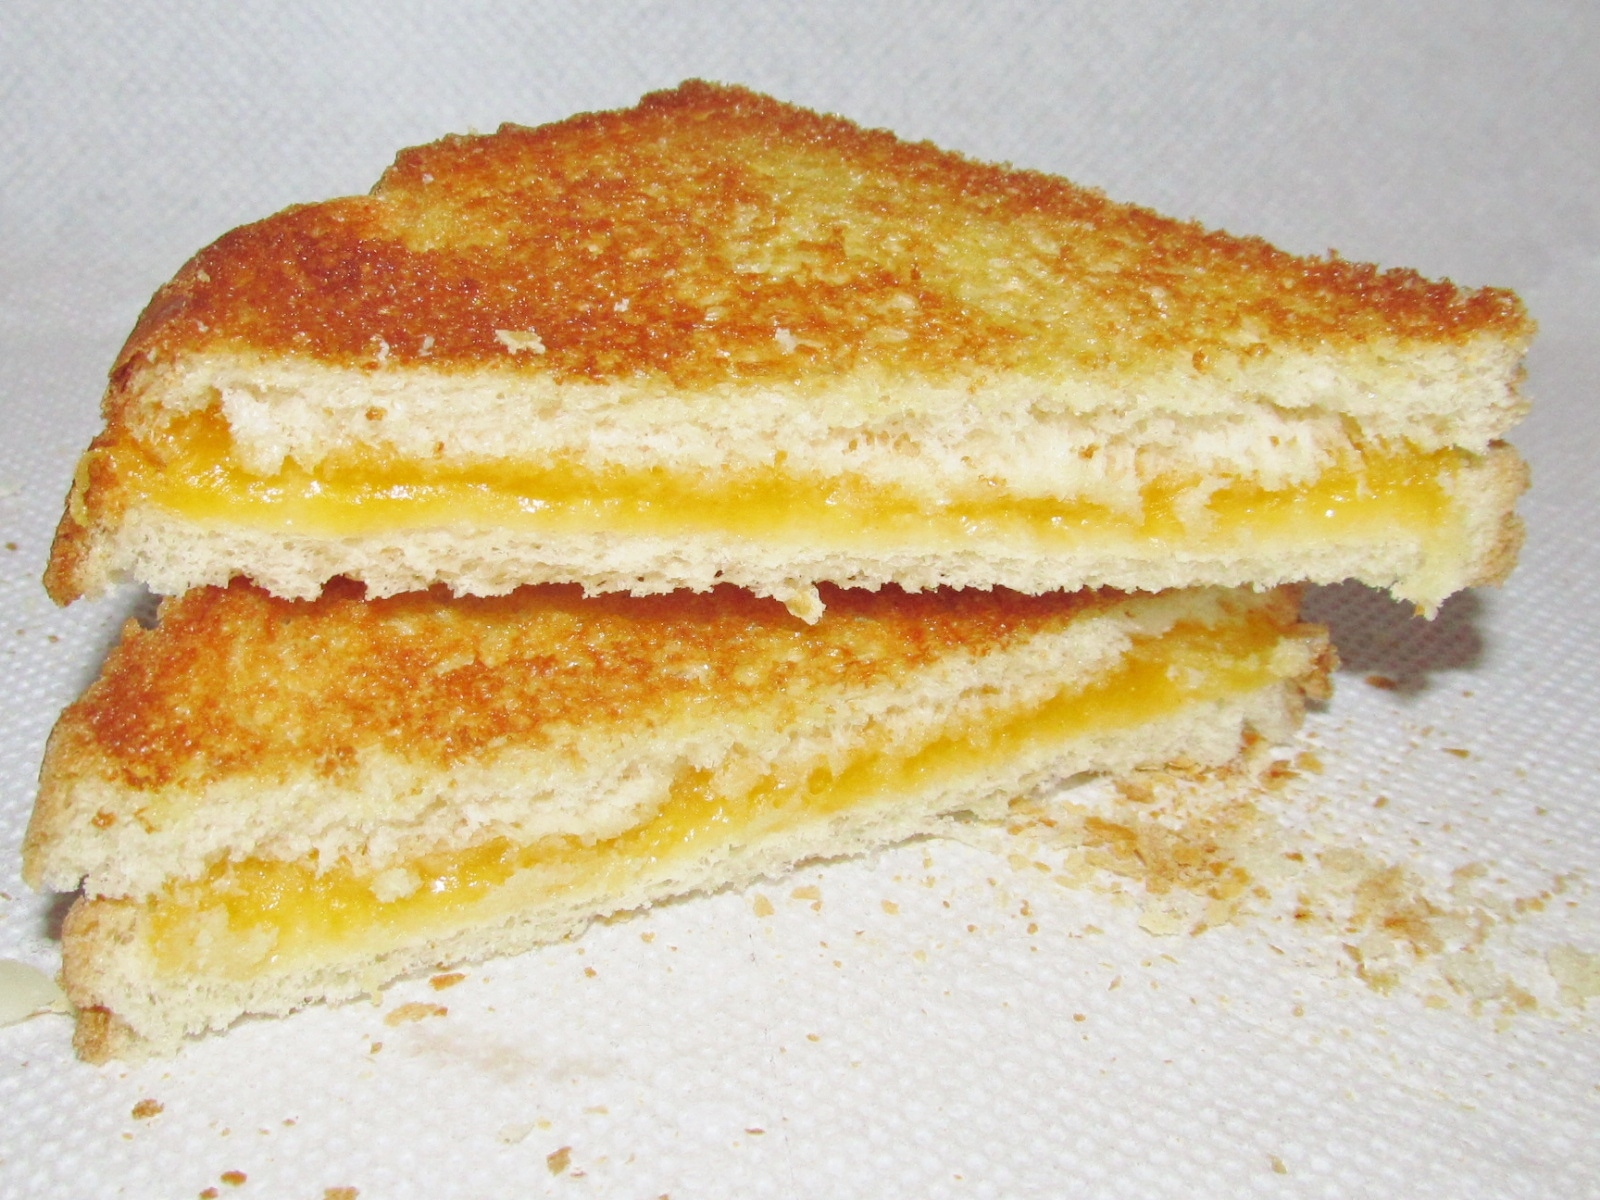 File:Grilled Cheese Sandwich (16938984390).jpg - Wikimedia Commons